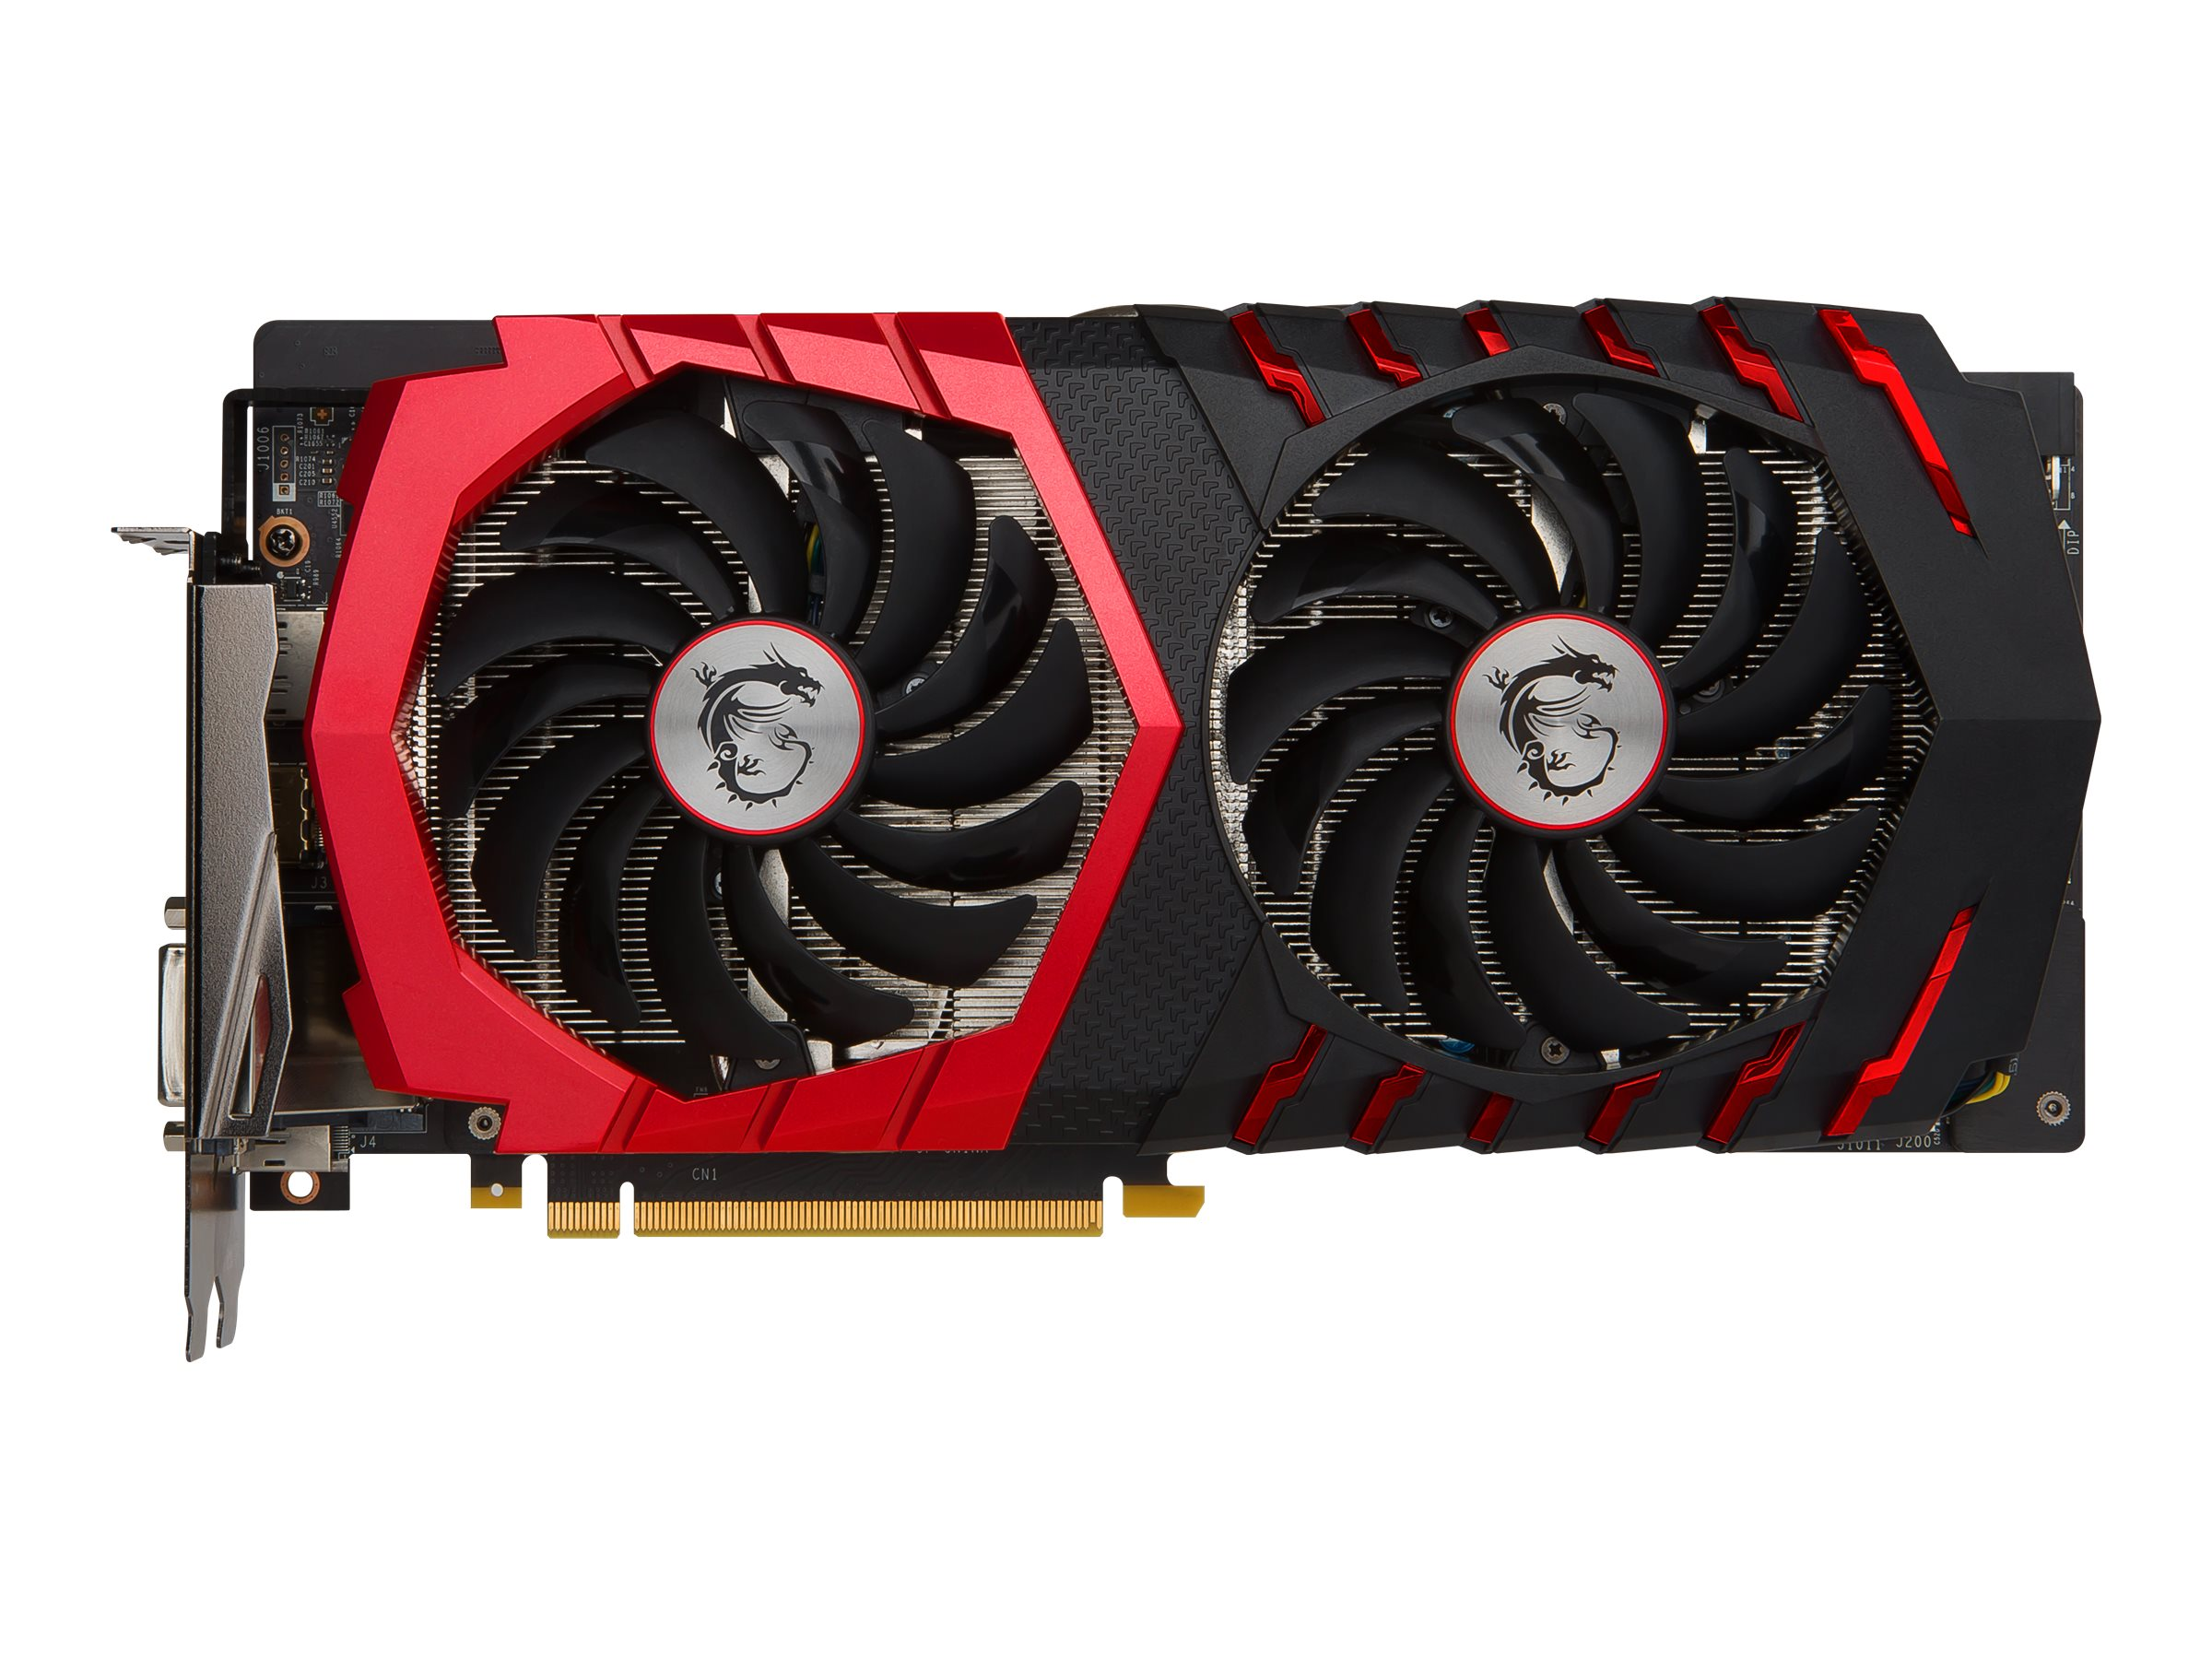 Image for Msi - Graphics Card - Gf Gtx 1060 - 6 Gb from Circuit City